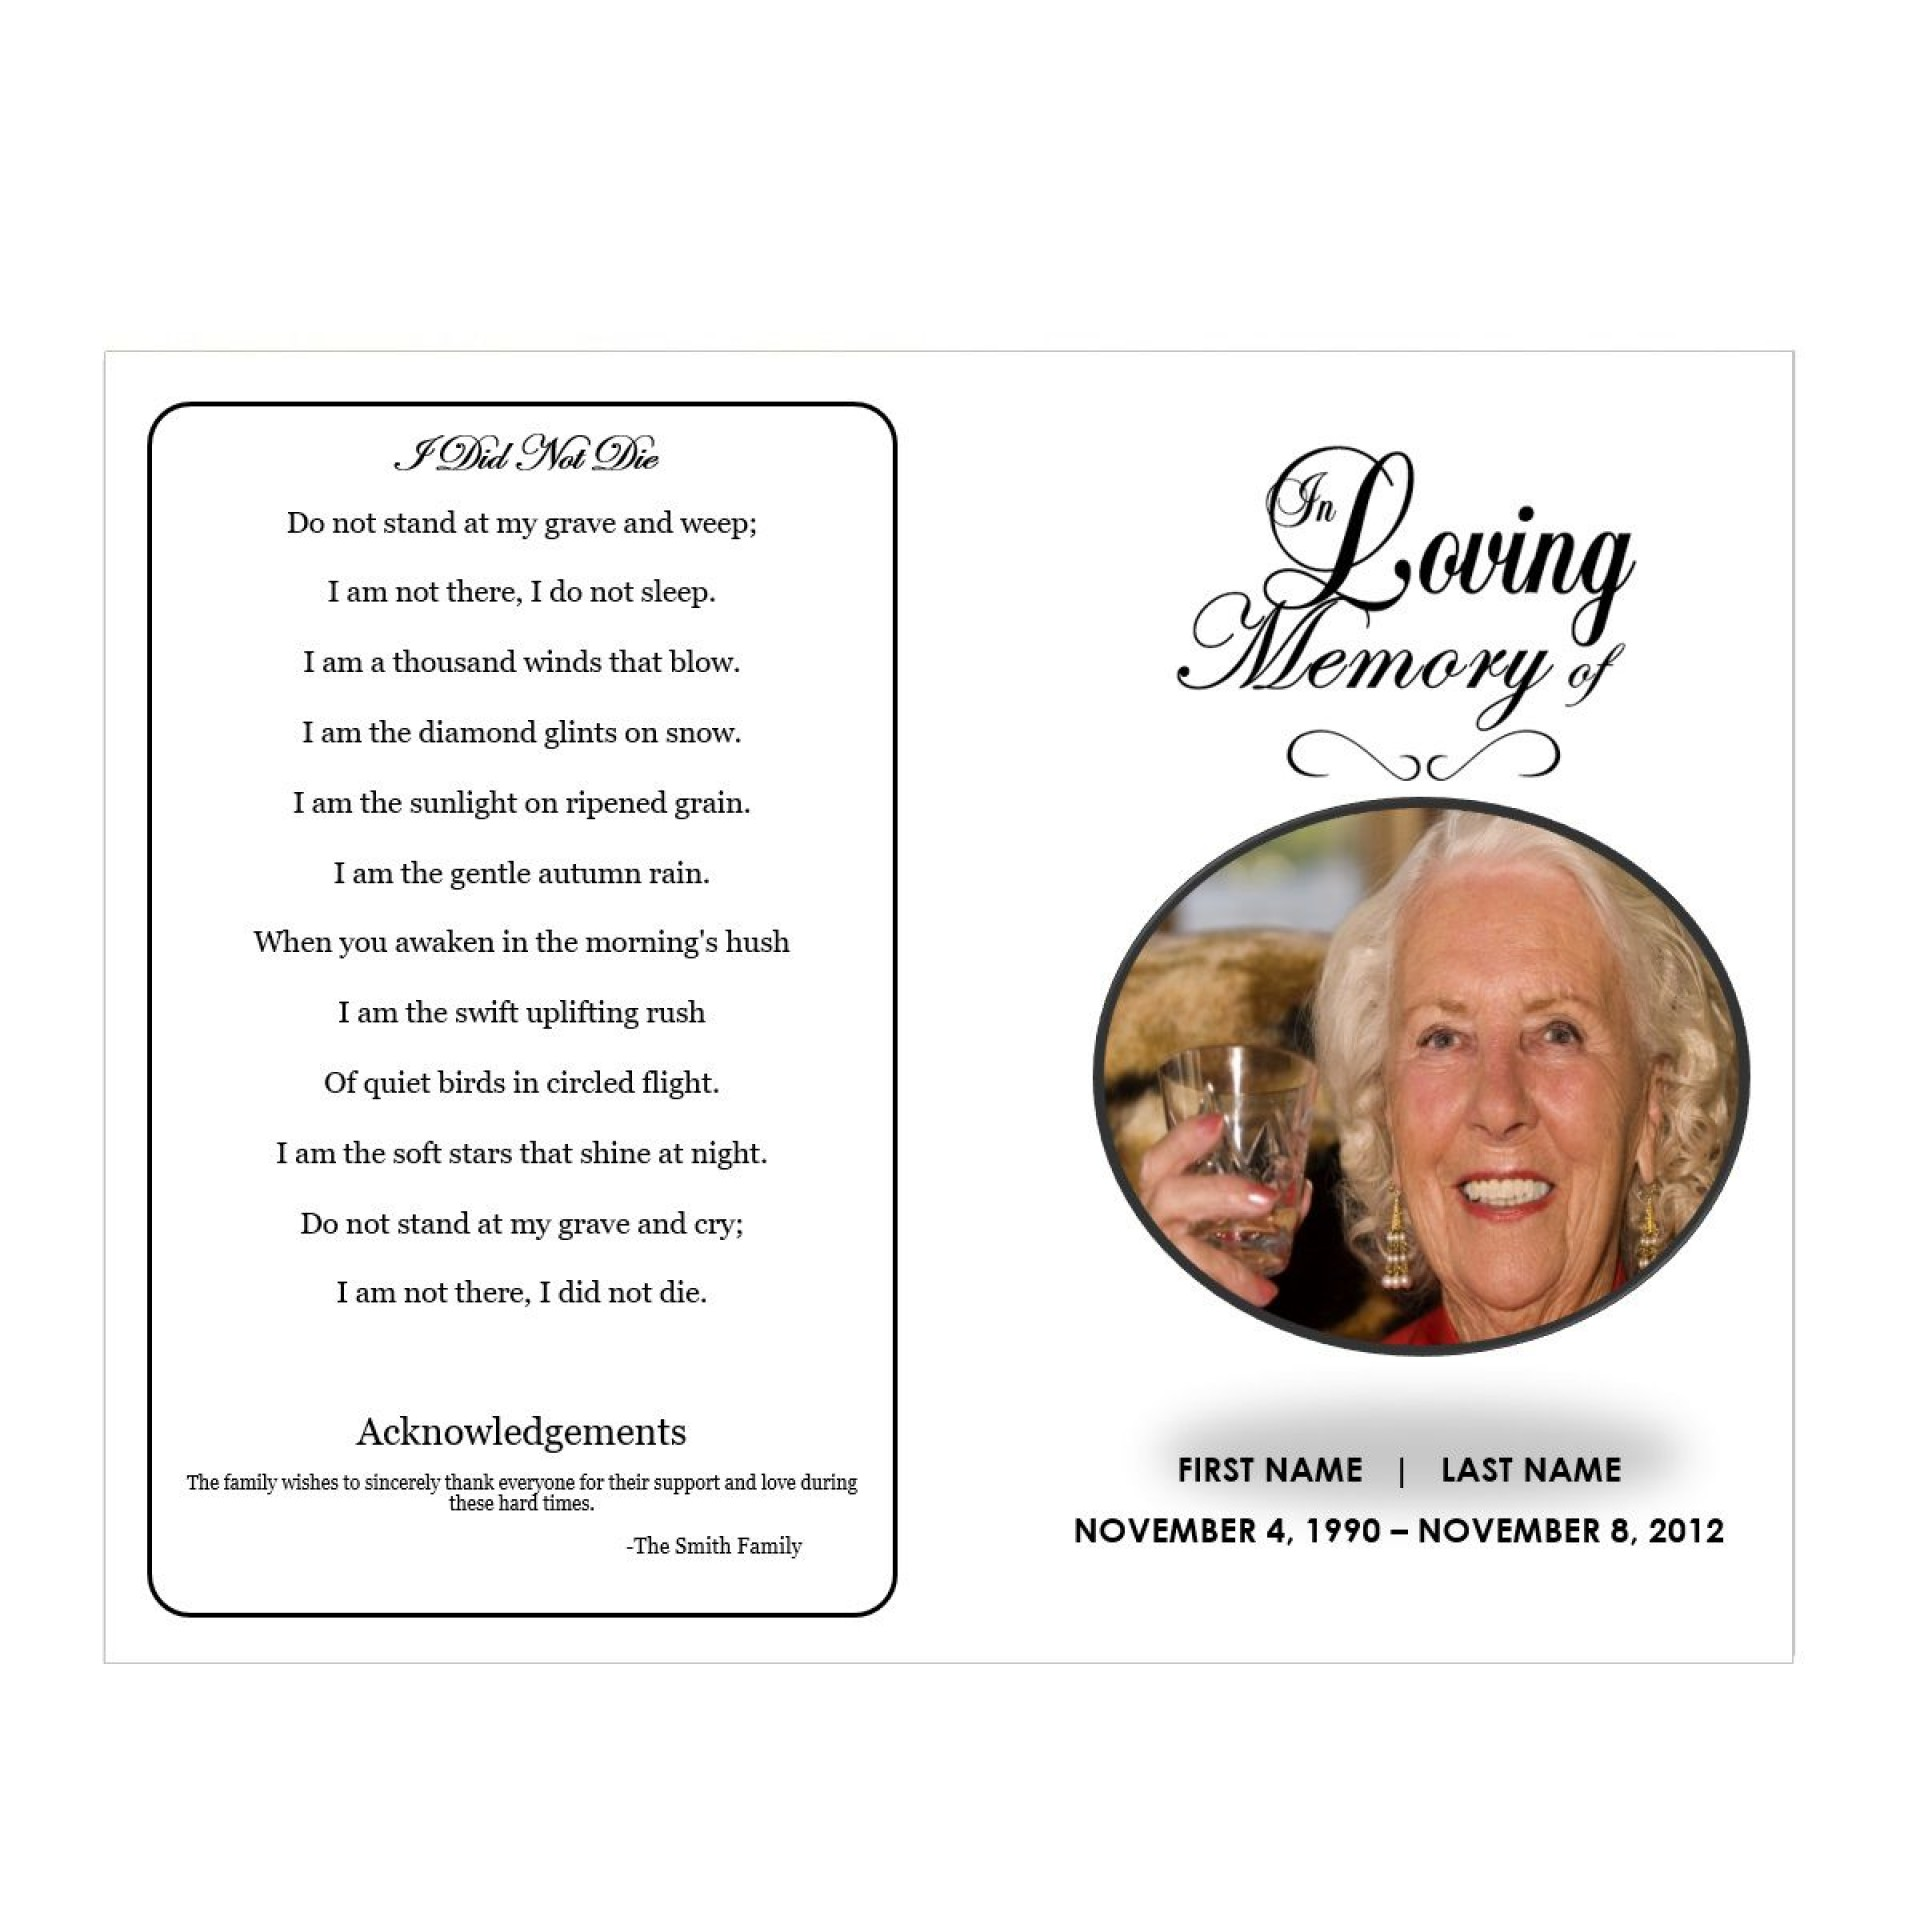 009 Unbelievable In Loving Memory Template Word Concept 1920